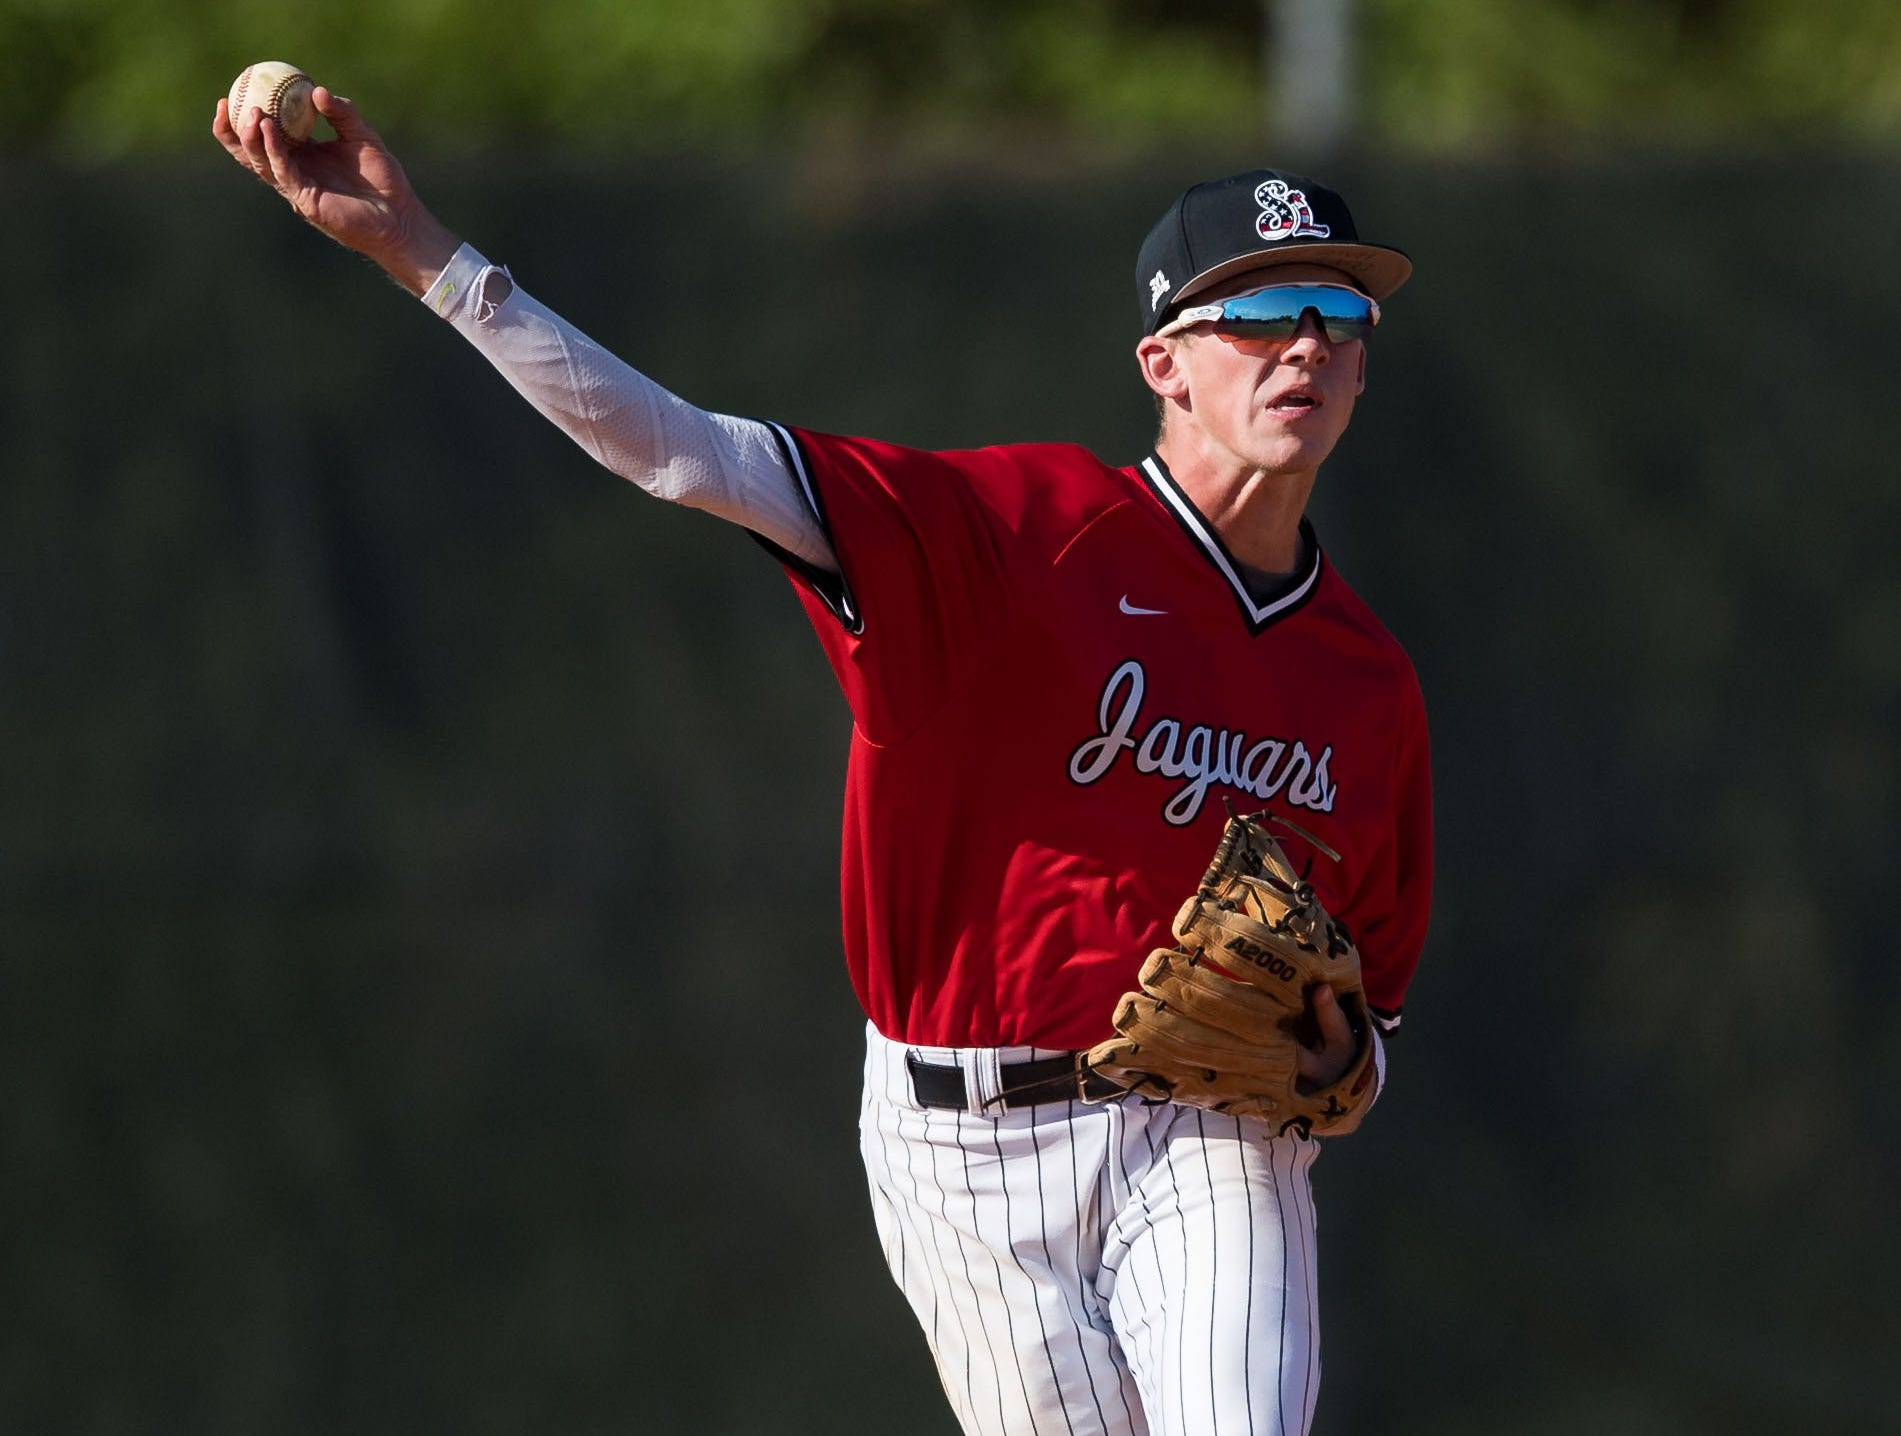 Lincoln Park Academy plays against Port St. Lucie during the high school baseball game Thursday, March 14, 2019, at Port St. Lucie High School.